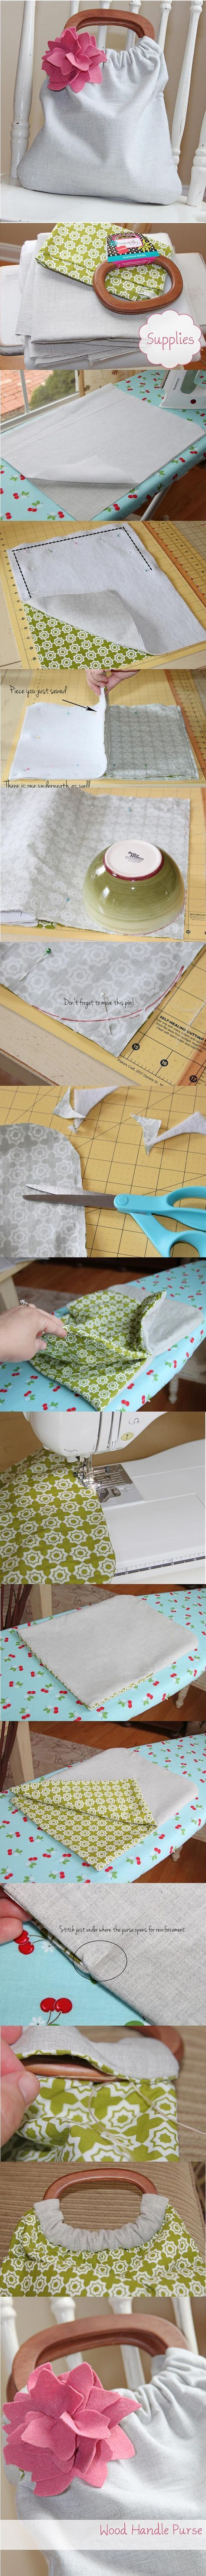 DIY: Bag Made With Wooden Handles And Fabric. Easy, clear instructions with great pics to make this teen project an easy DIY purse that can be styled to a one of a kind fashion statement.